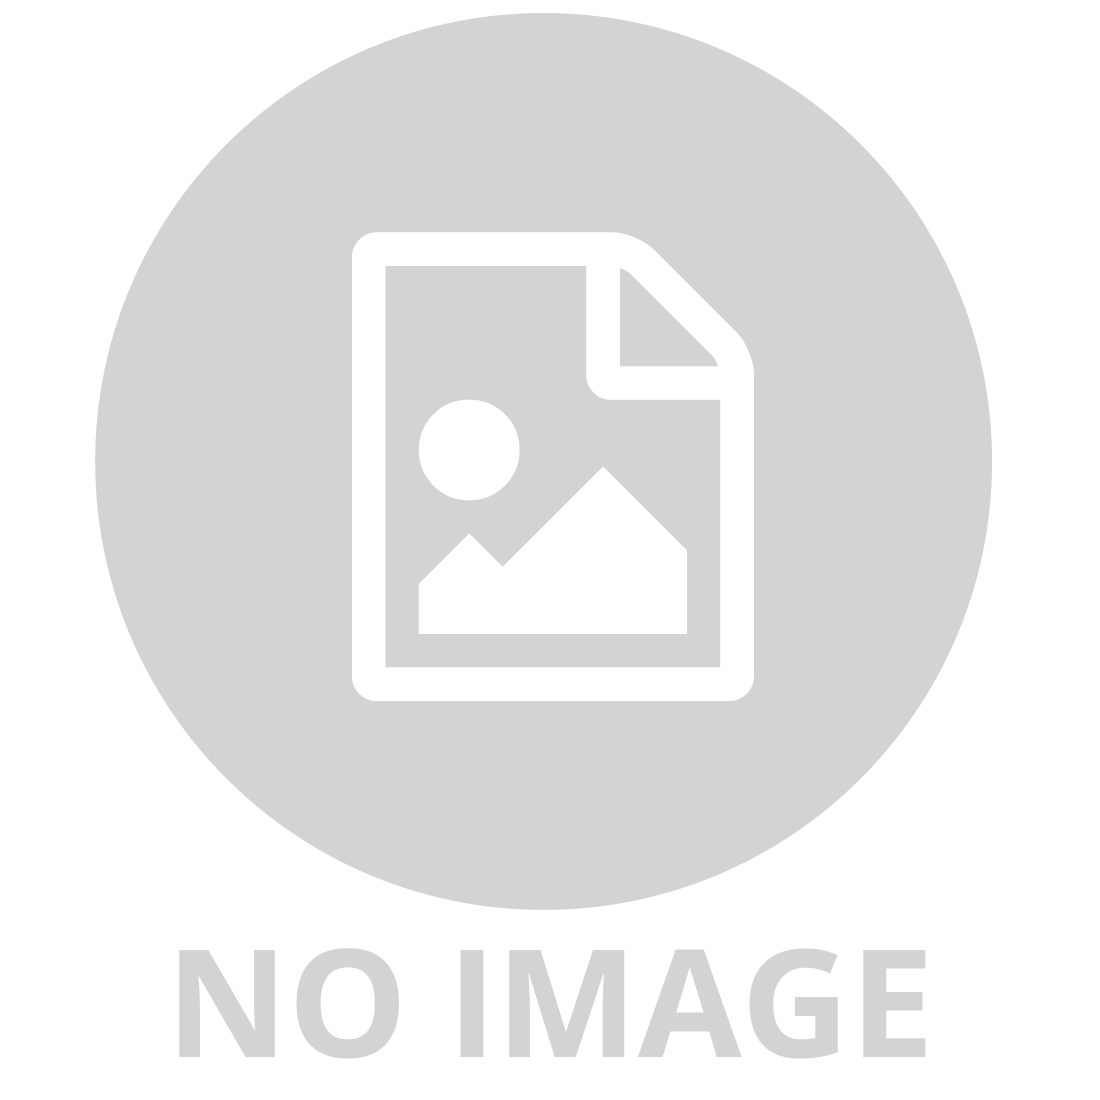 TAMIYA 1/35 MILITARY MINIATURES BRICK WALL SET